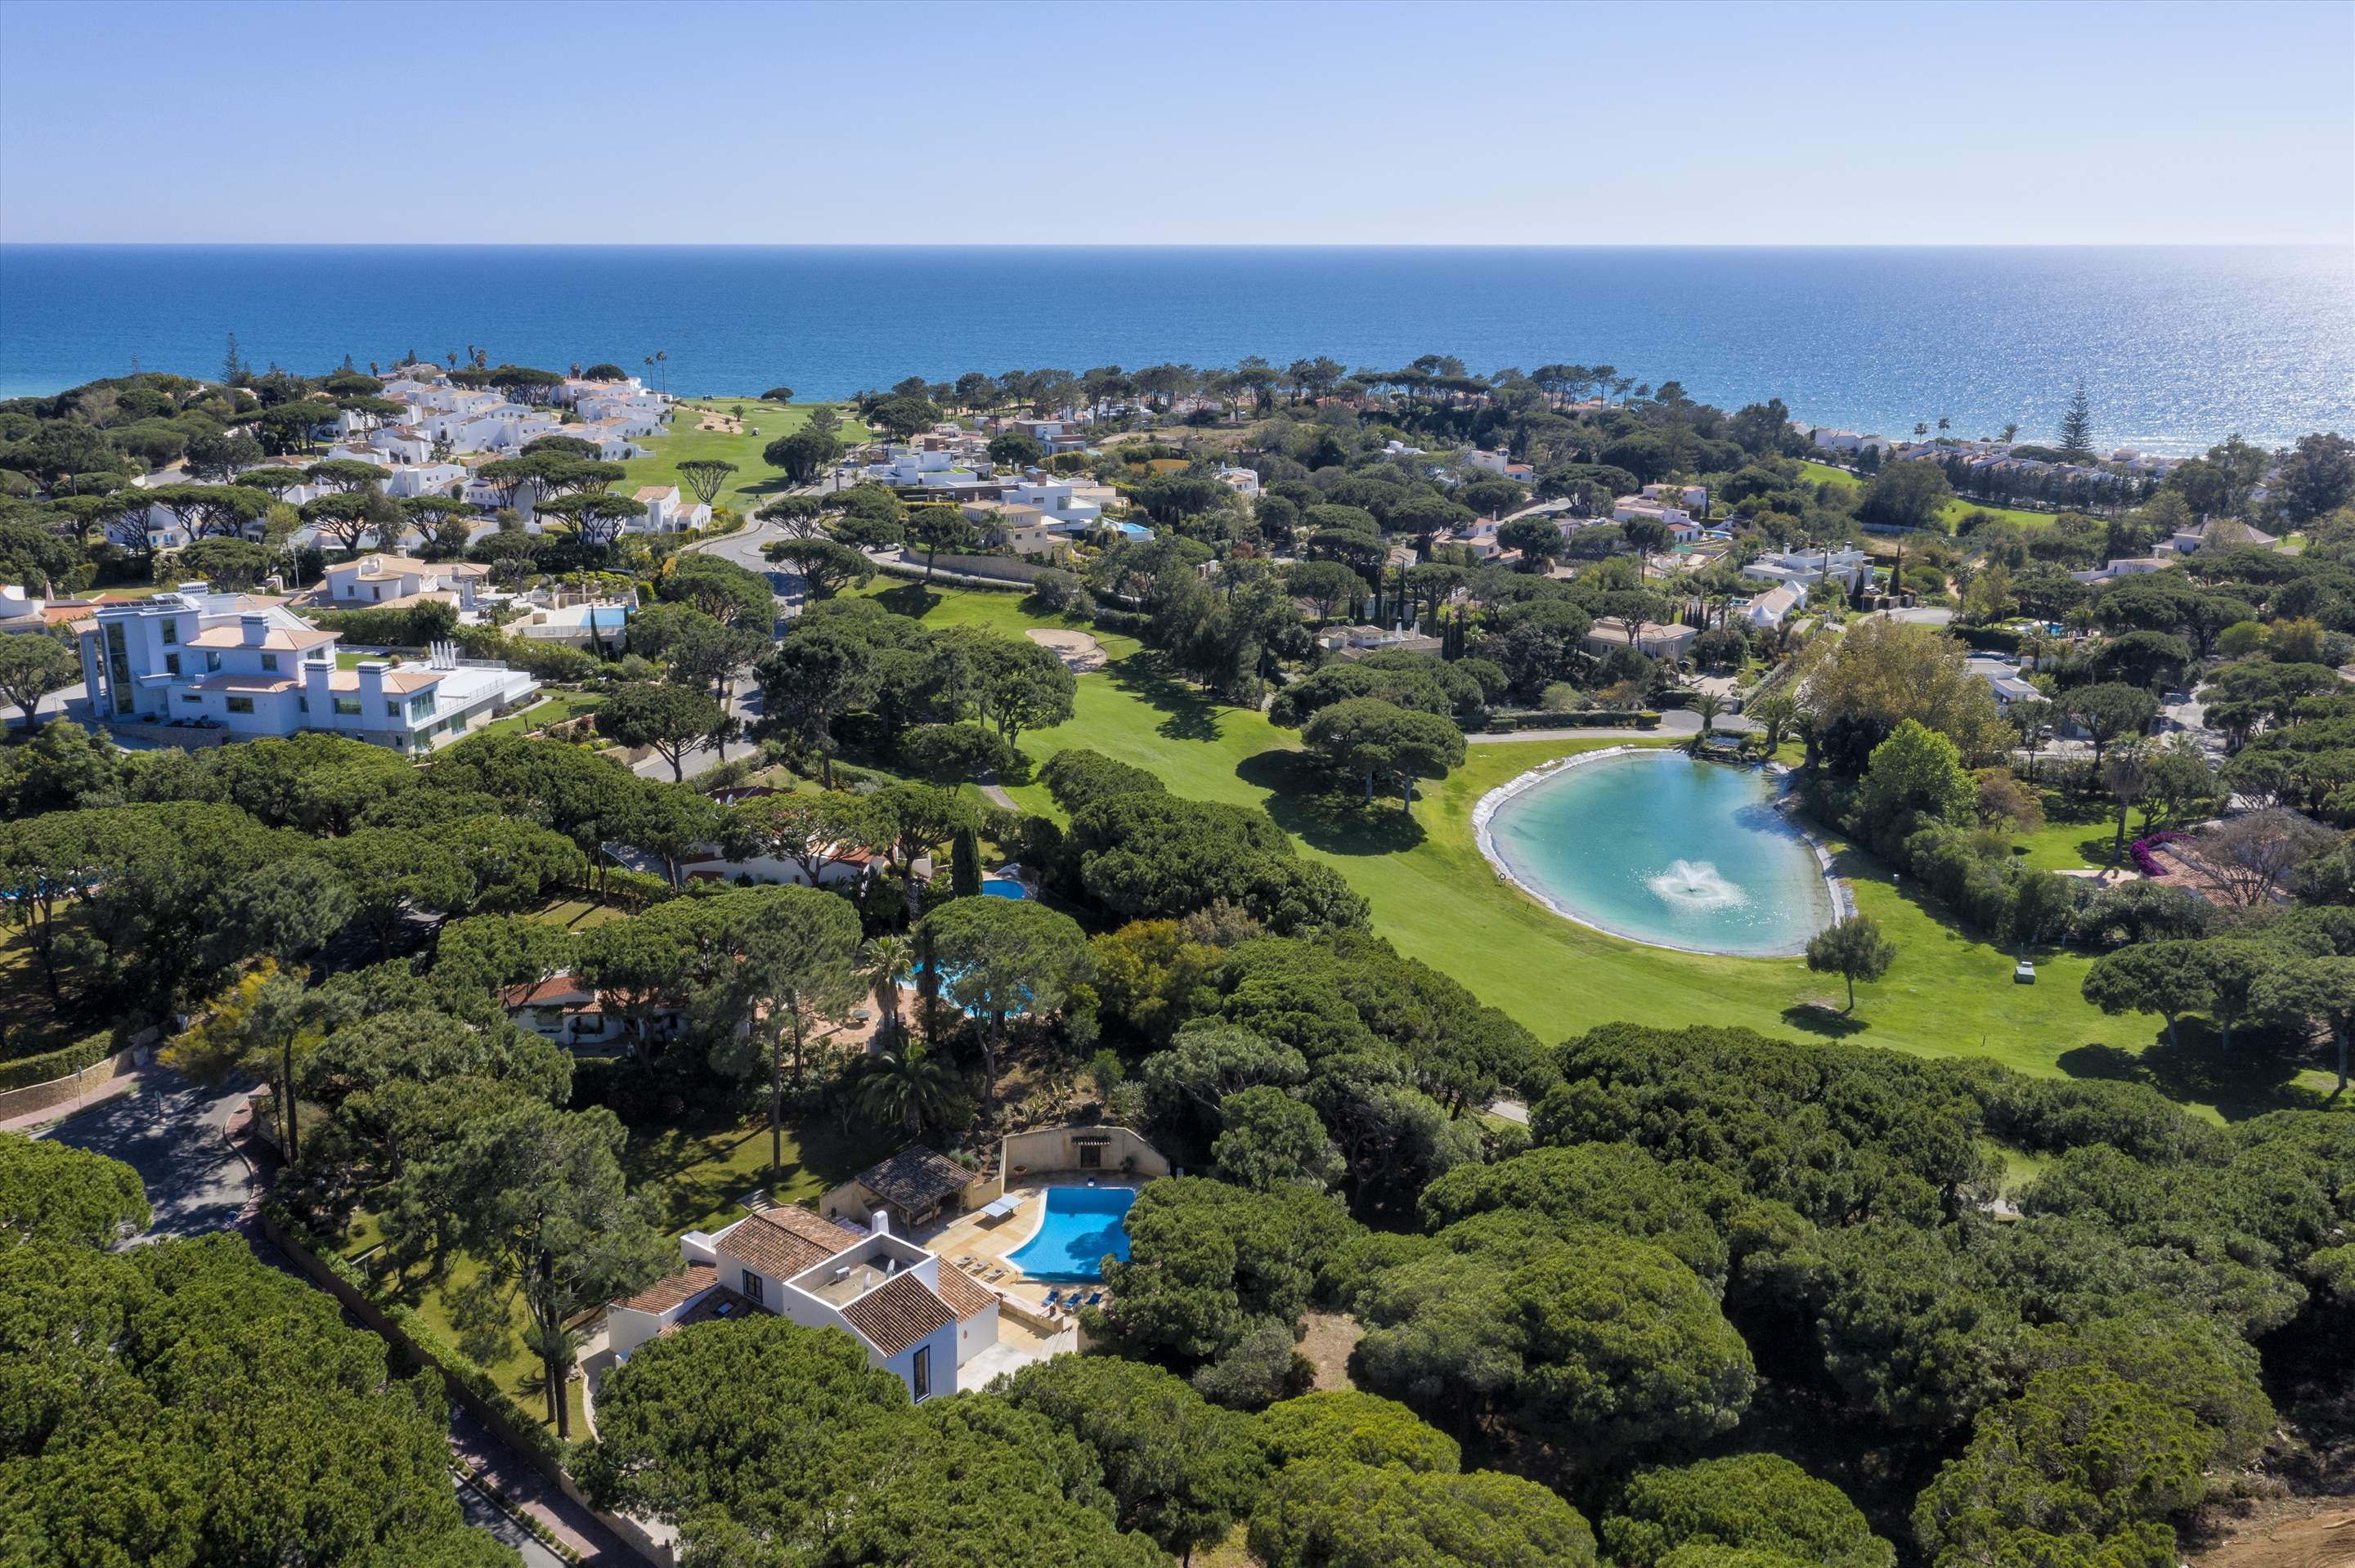 Villa Cristofina, 5 Bedroom, 5 bedroom villa in Vale do Lobo, Algarve Photo #12